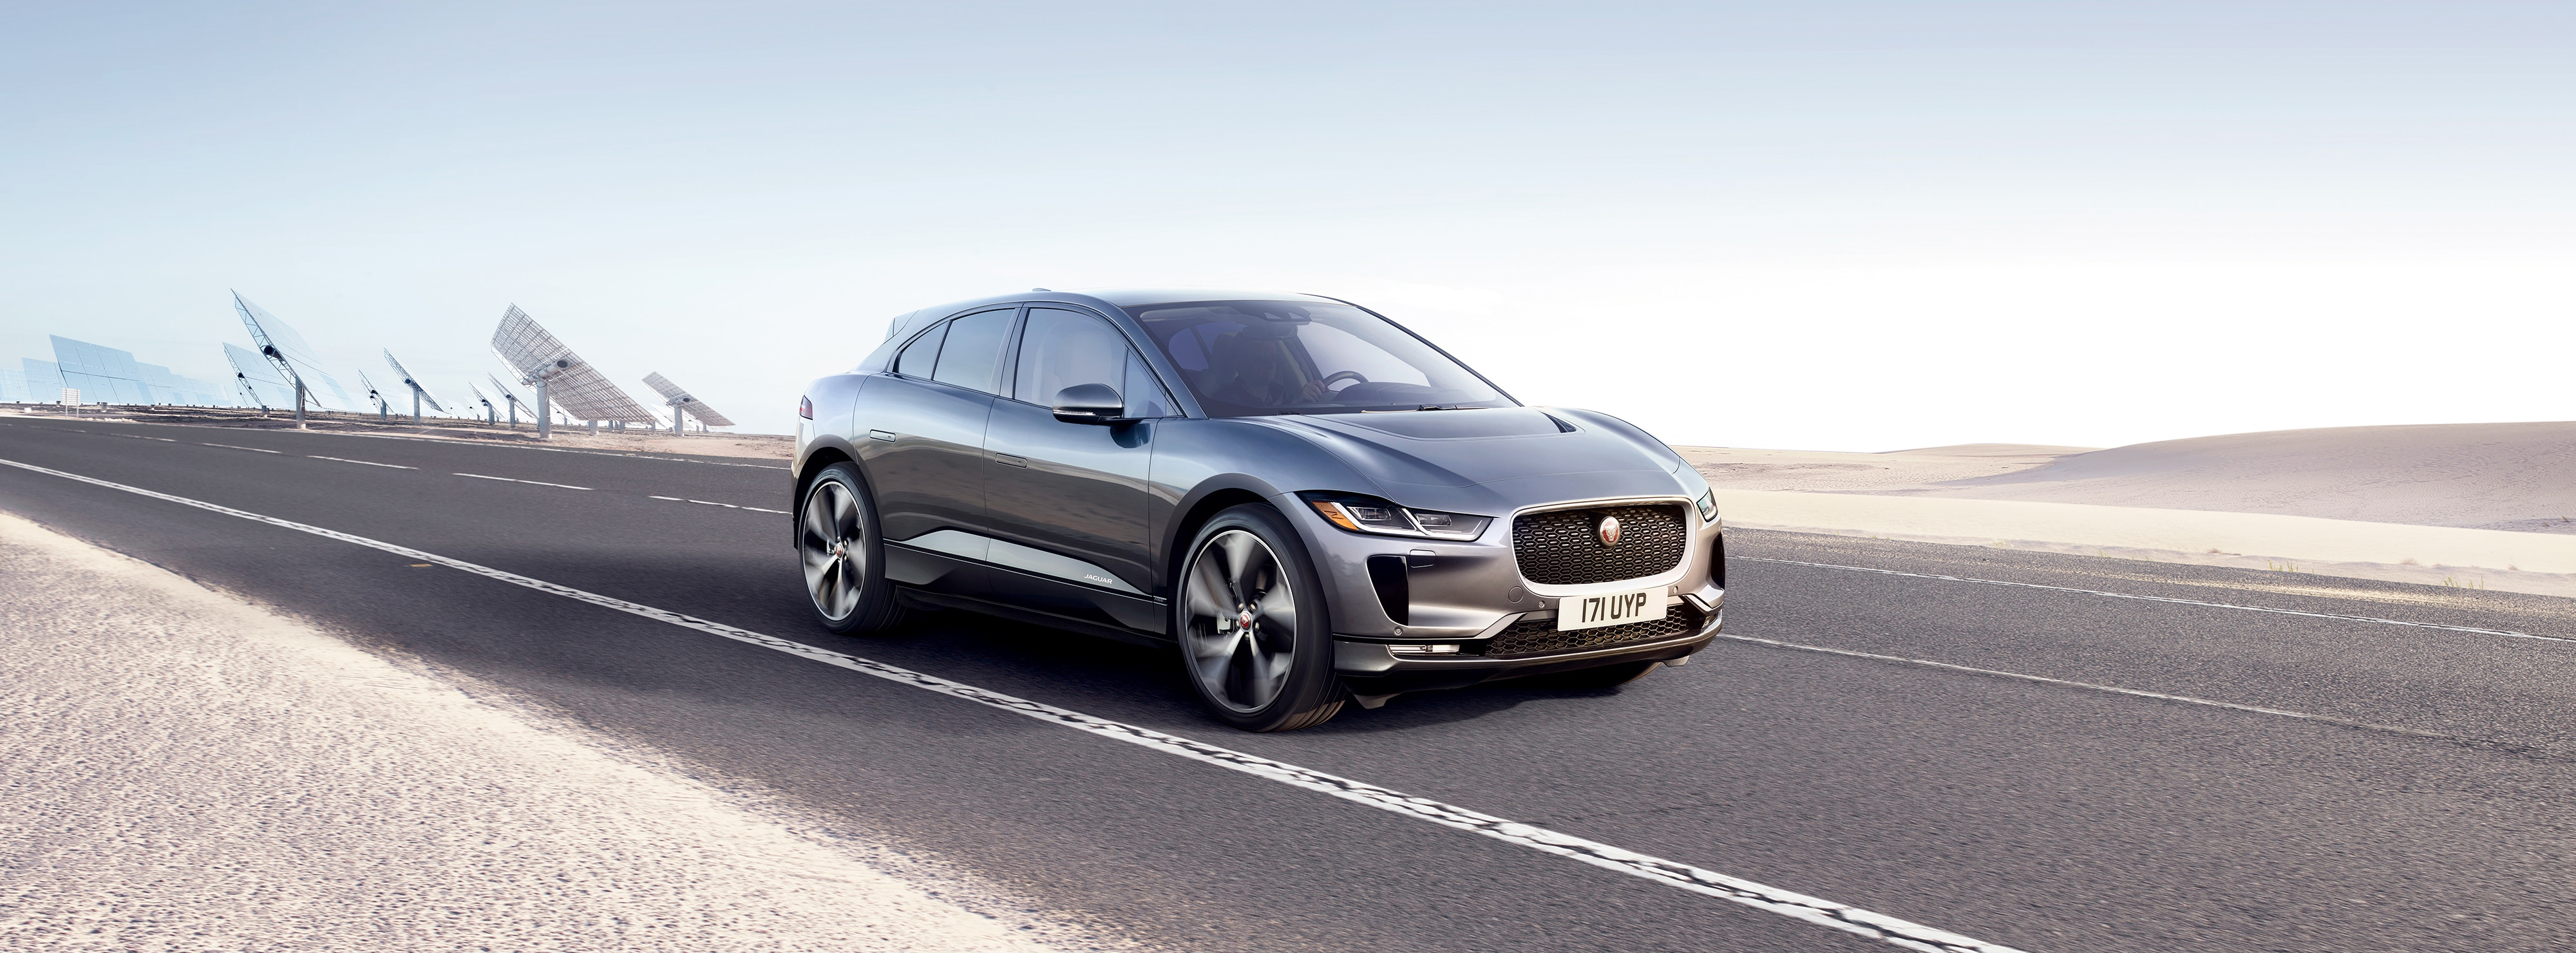 2019 Jaguar I-Pace EV: Design, Specs, Mileage, Price >> 2019 Jaguar I Pace Ev Design Specs Mileage Price 2020